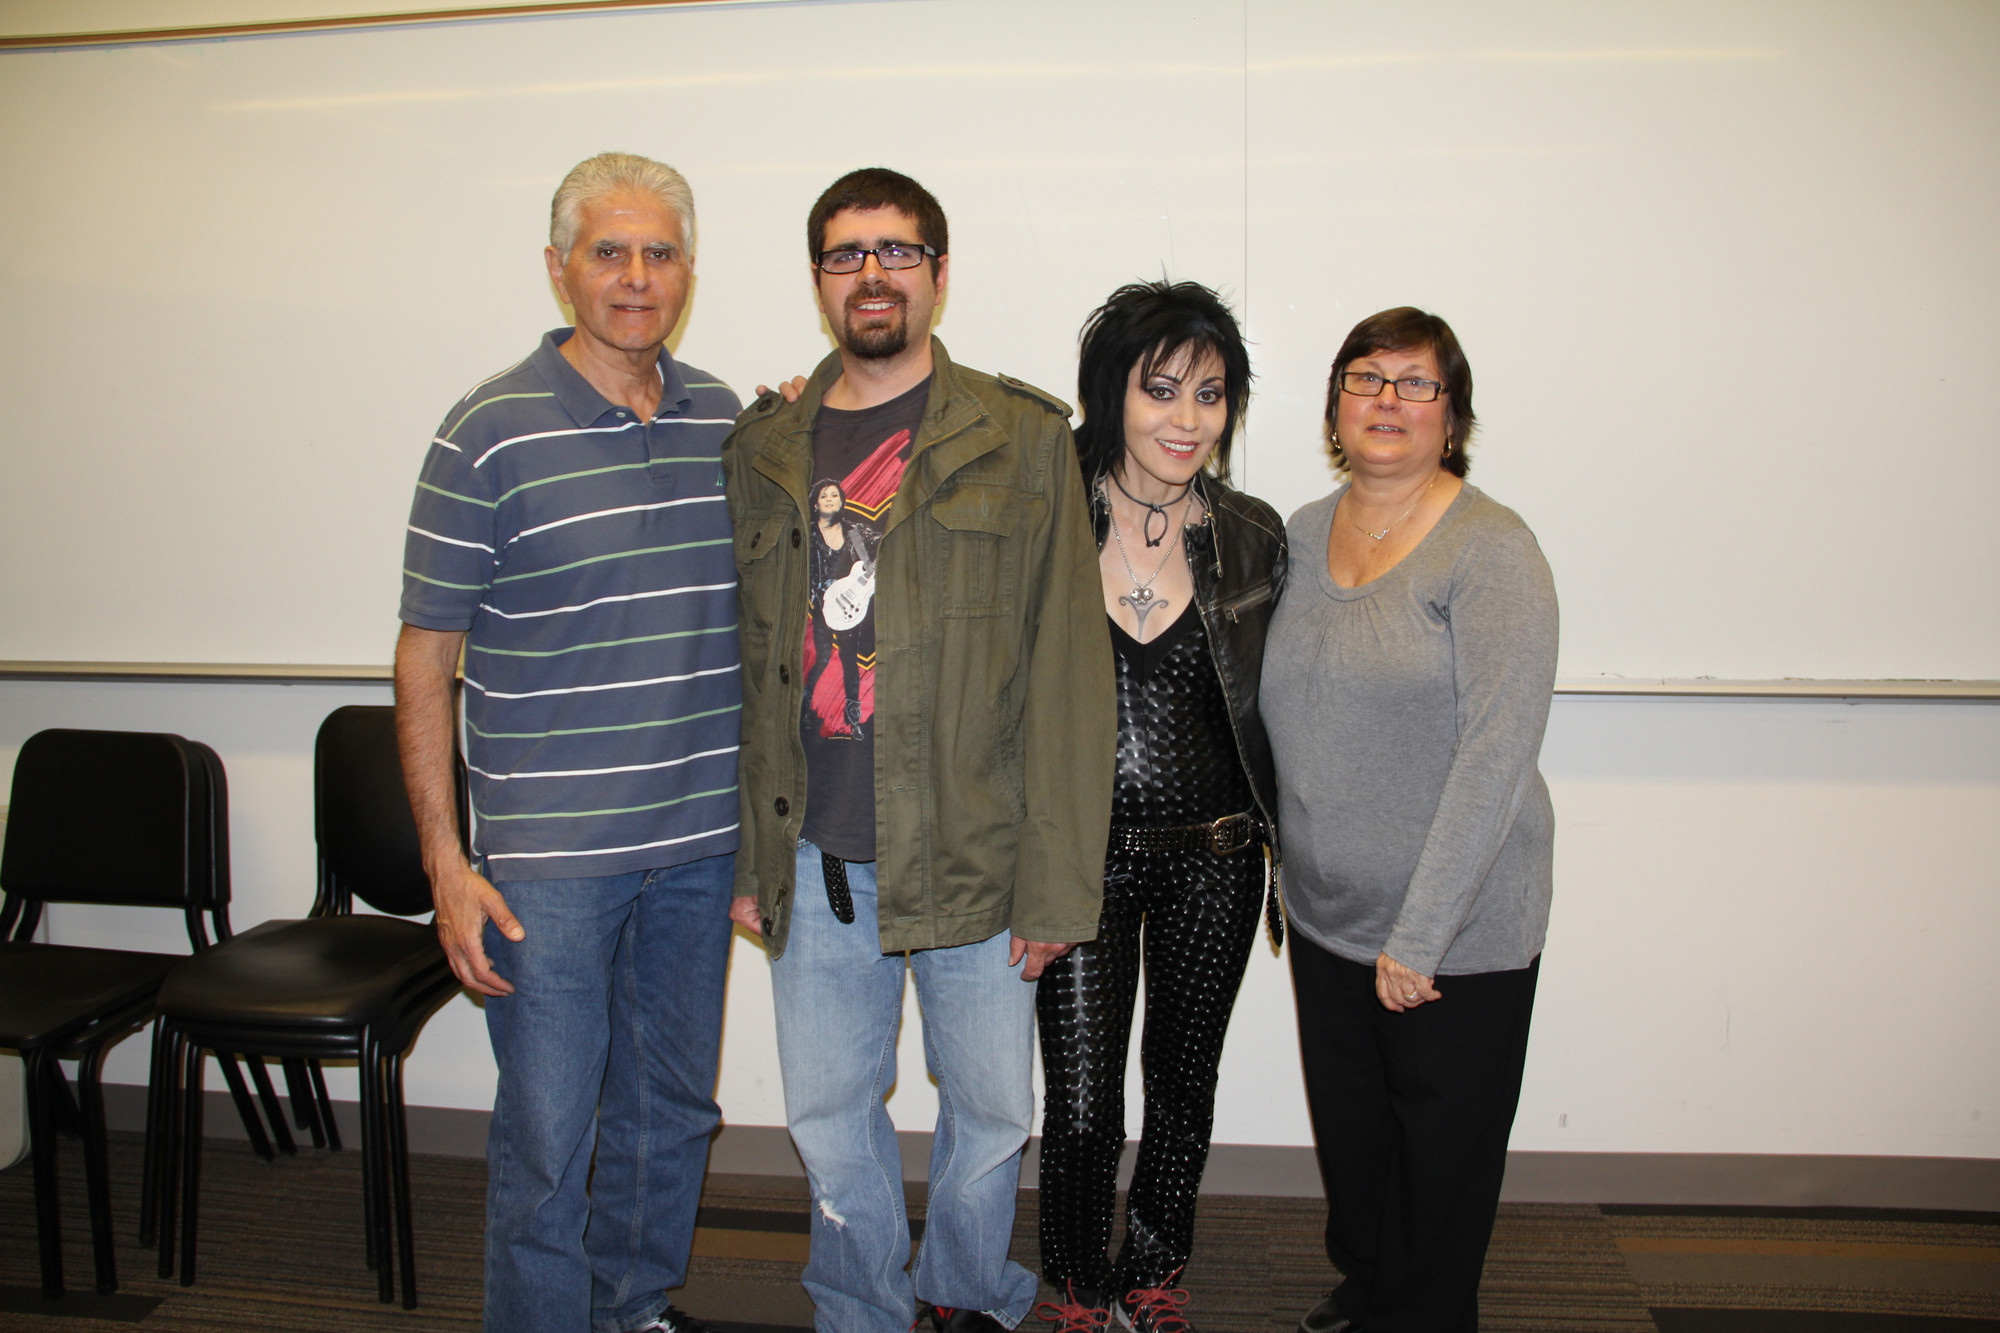 Angelo Maroulis, with his son Angelo and wife Cathy, met with Joan Jett before her concert at Molloy College's Madison Theatre.